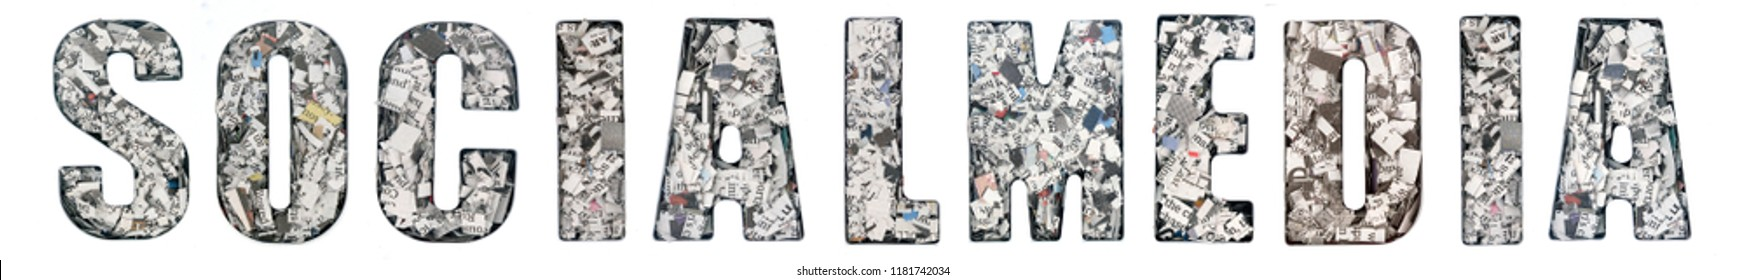 the word   SOCIALMEDIA  made up of lots of cut up newspaper  isolated